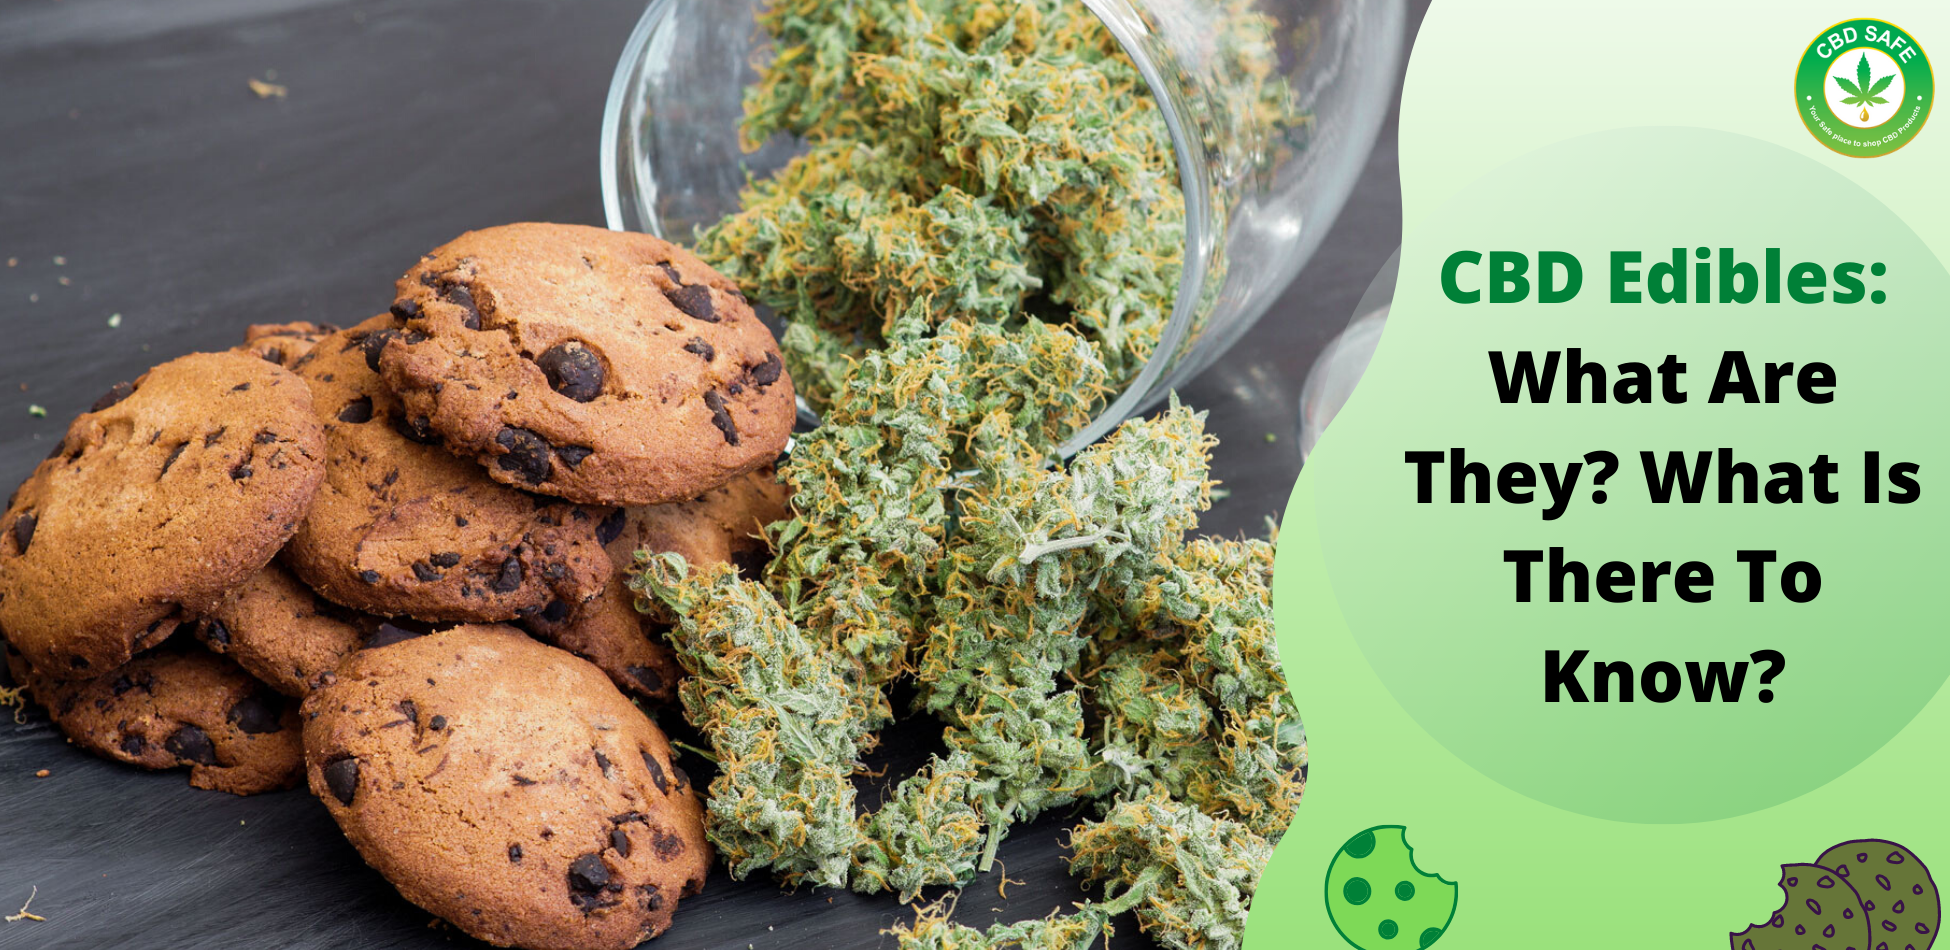 CBD Edibles: What Are They? What Is There To Know?